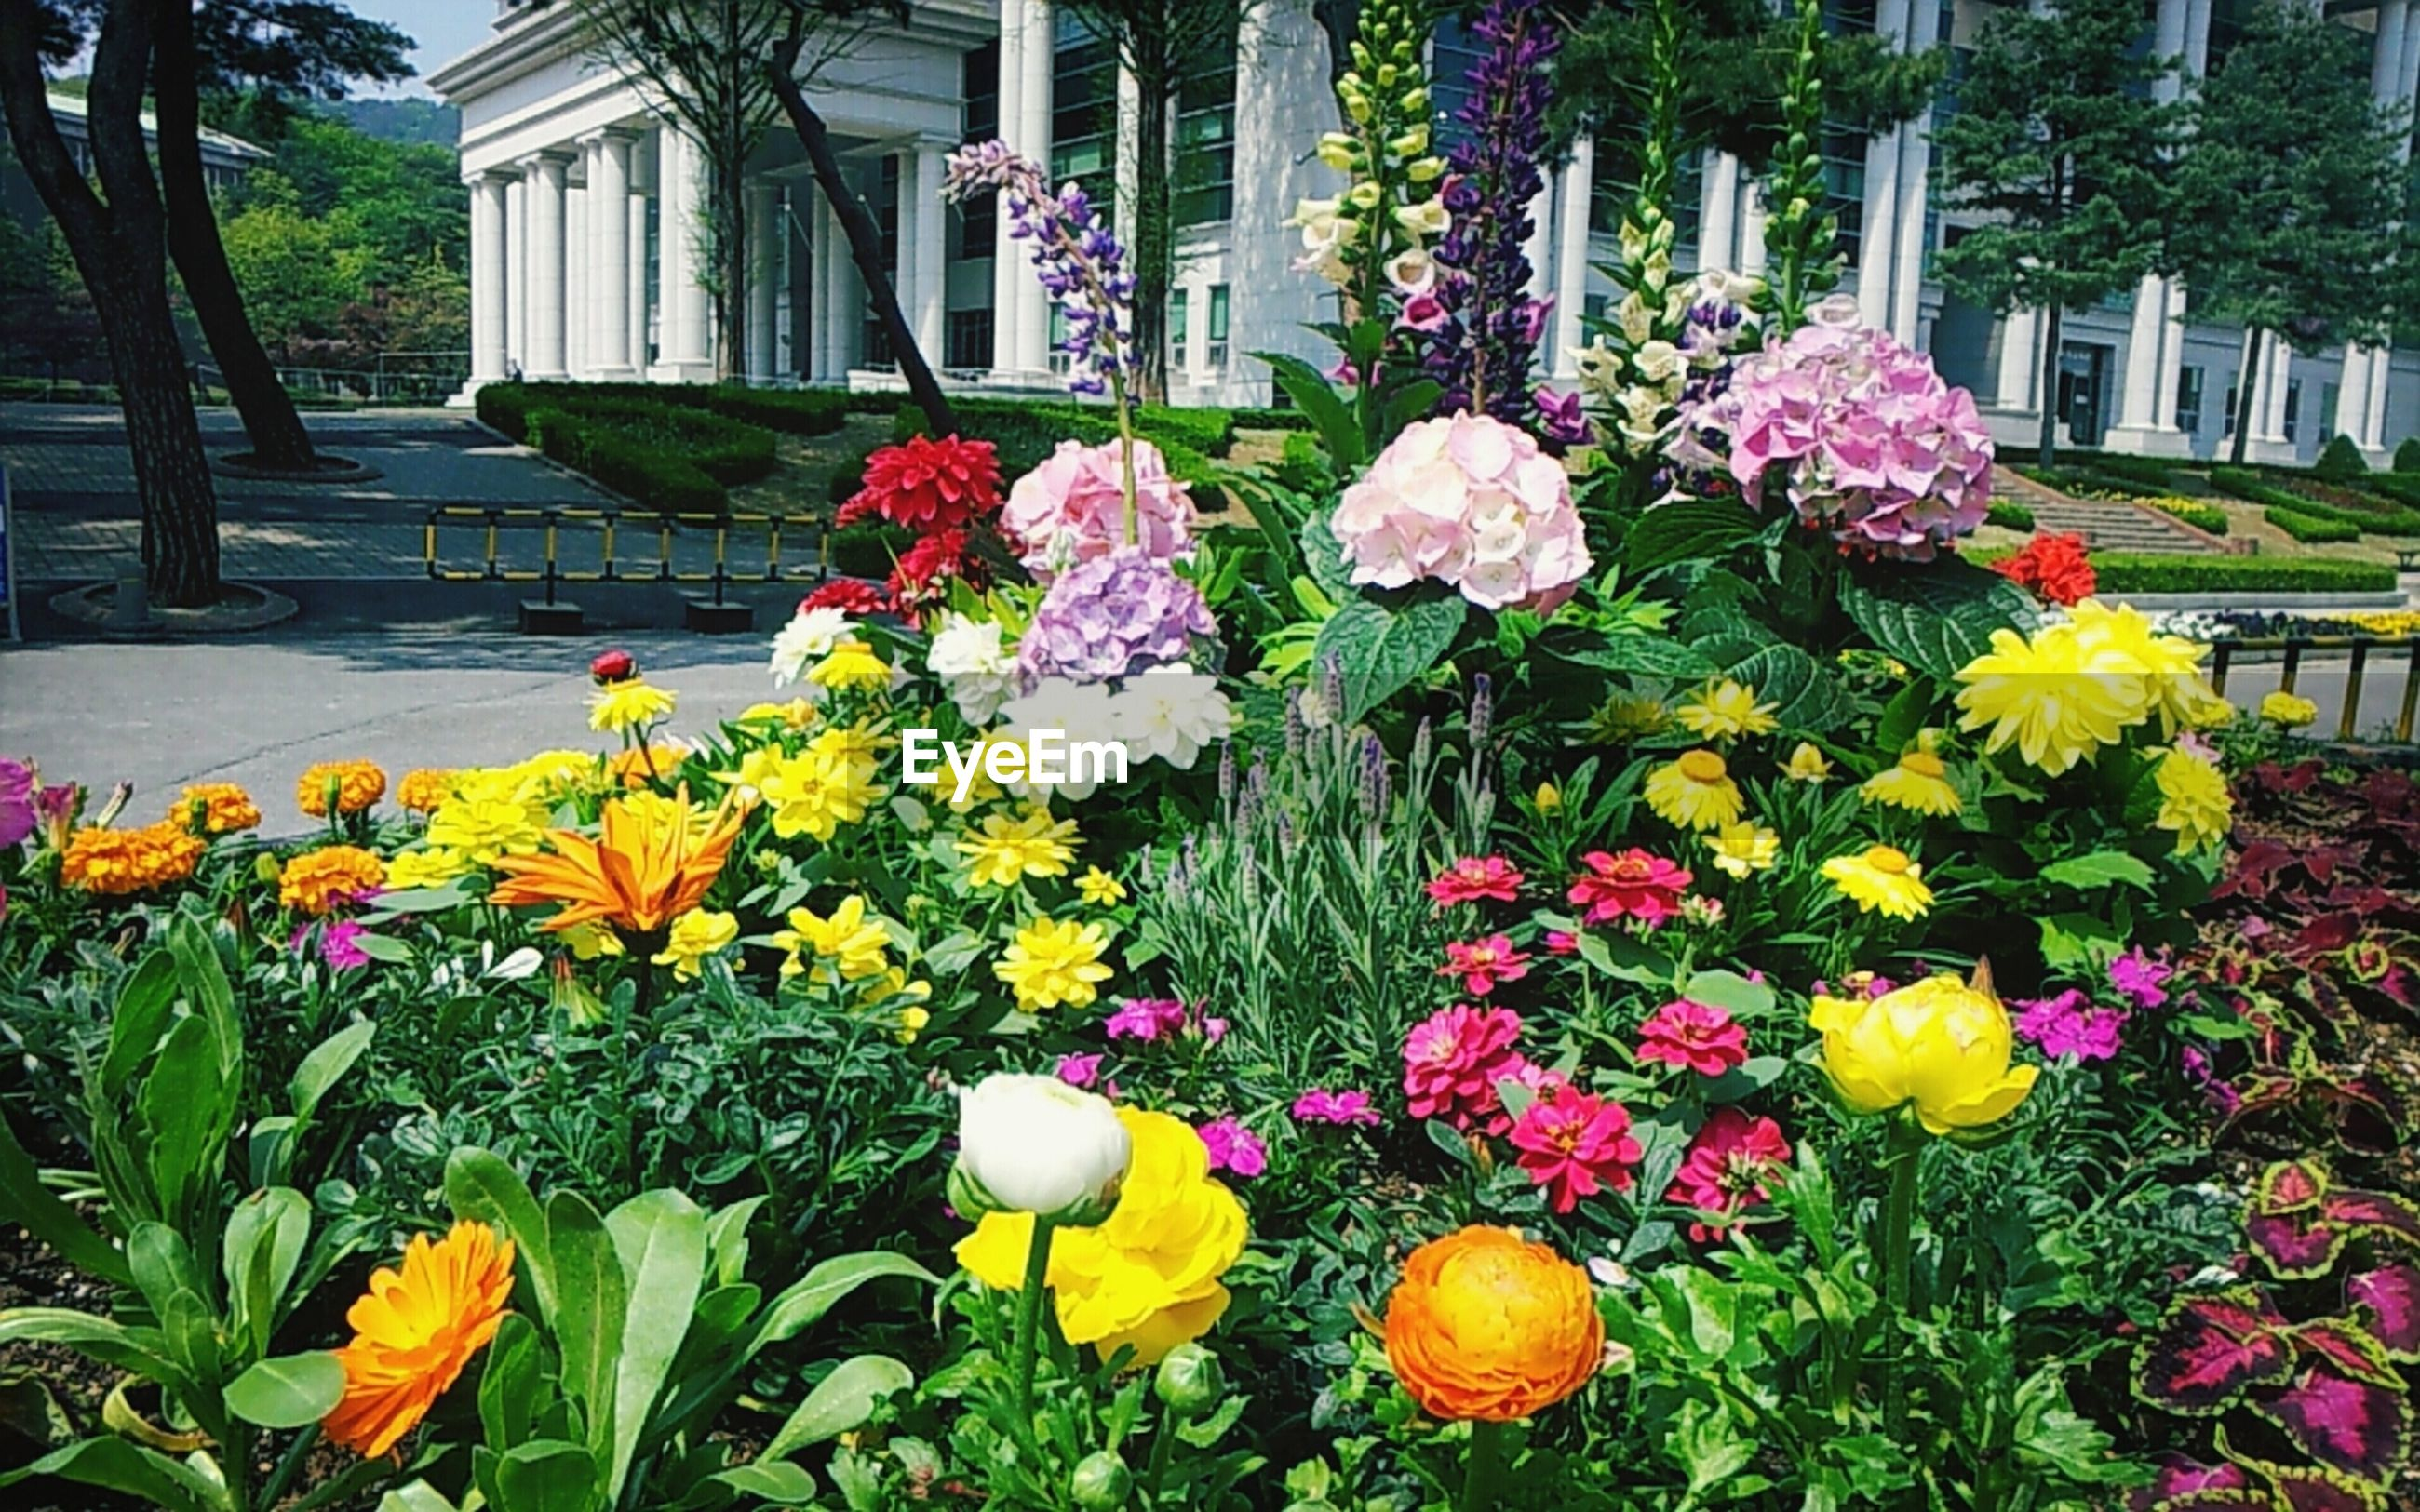 flower, freshness, fragility, petal, growth, multi colored, beauty in nature, yellow, tulip, blooming, flowerbed, plant, flower head, nature, abundance, building exterior, in bloom, lawn, colorful, blossom